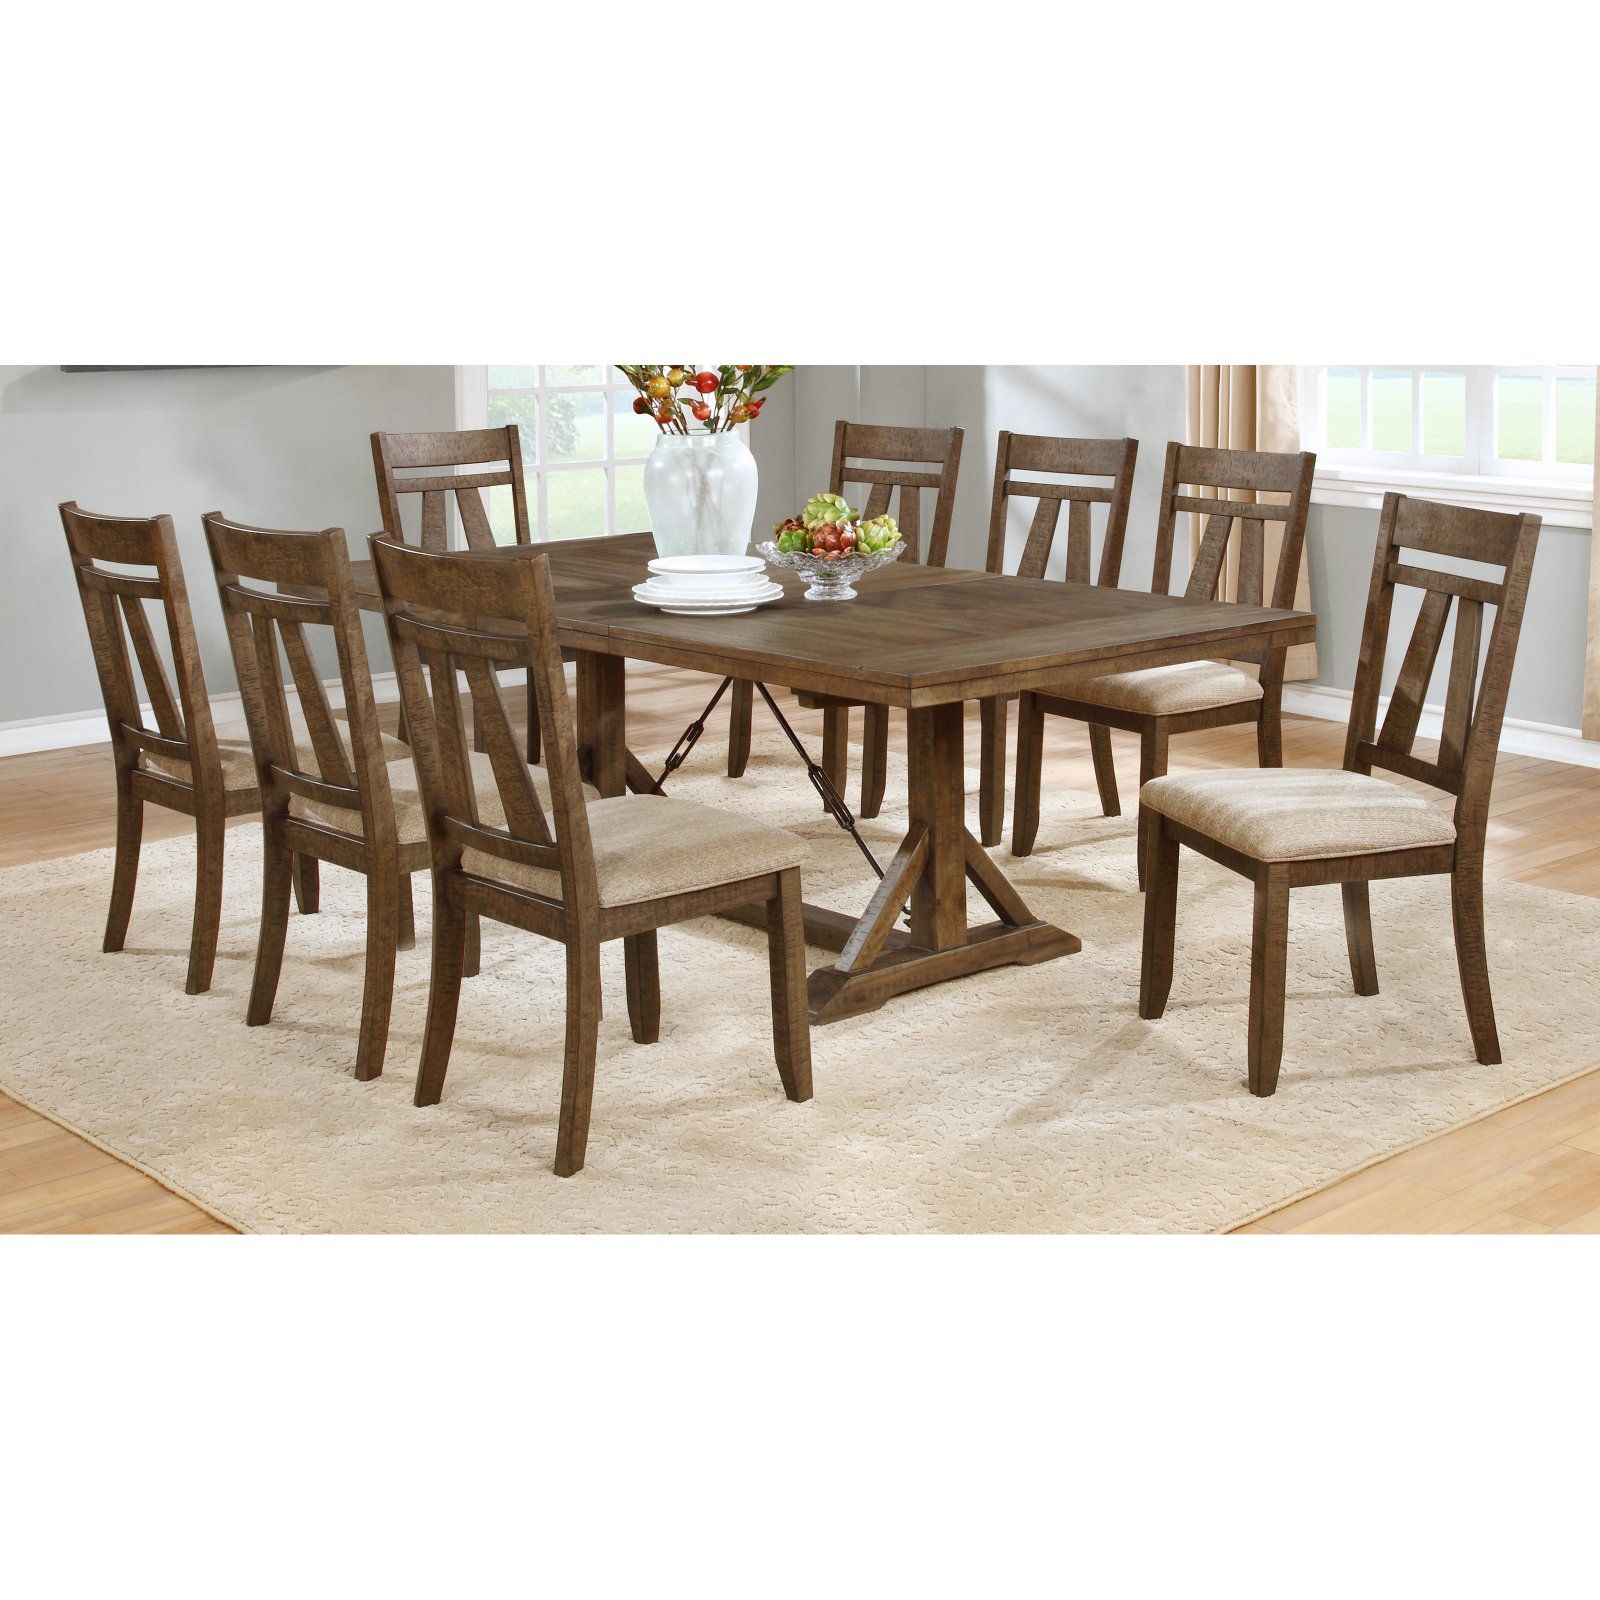 Home Dining Table Extension Dining Table Dining